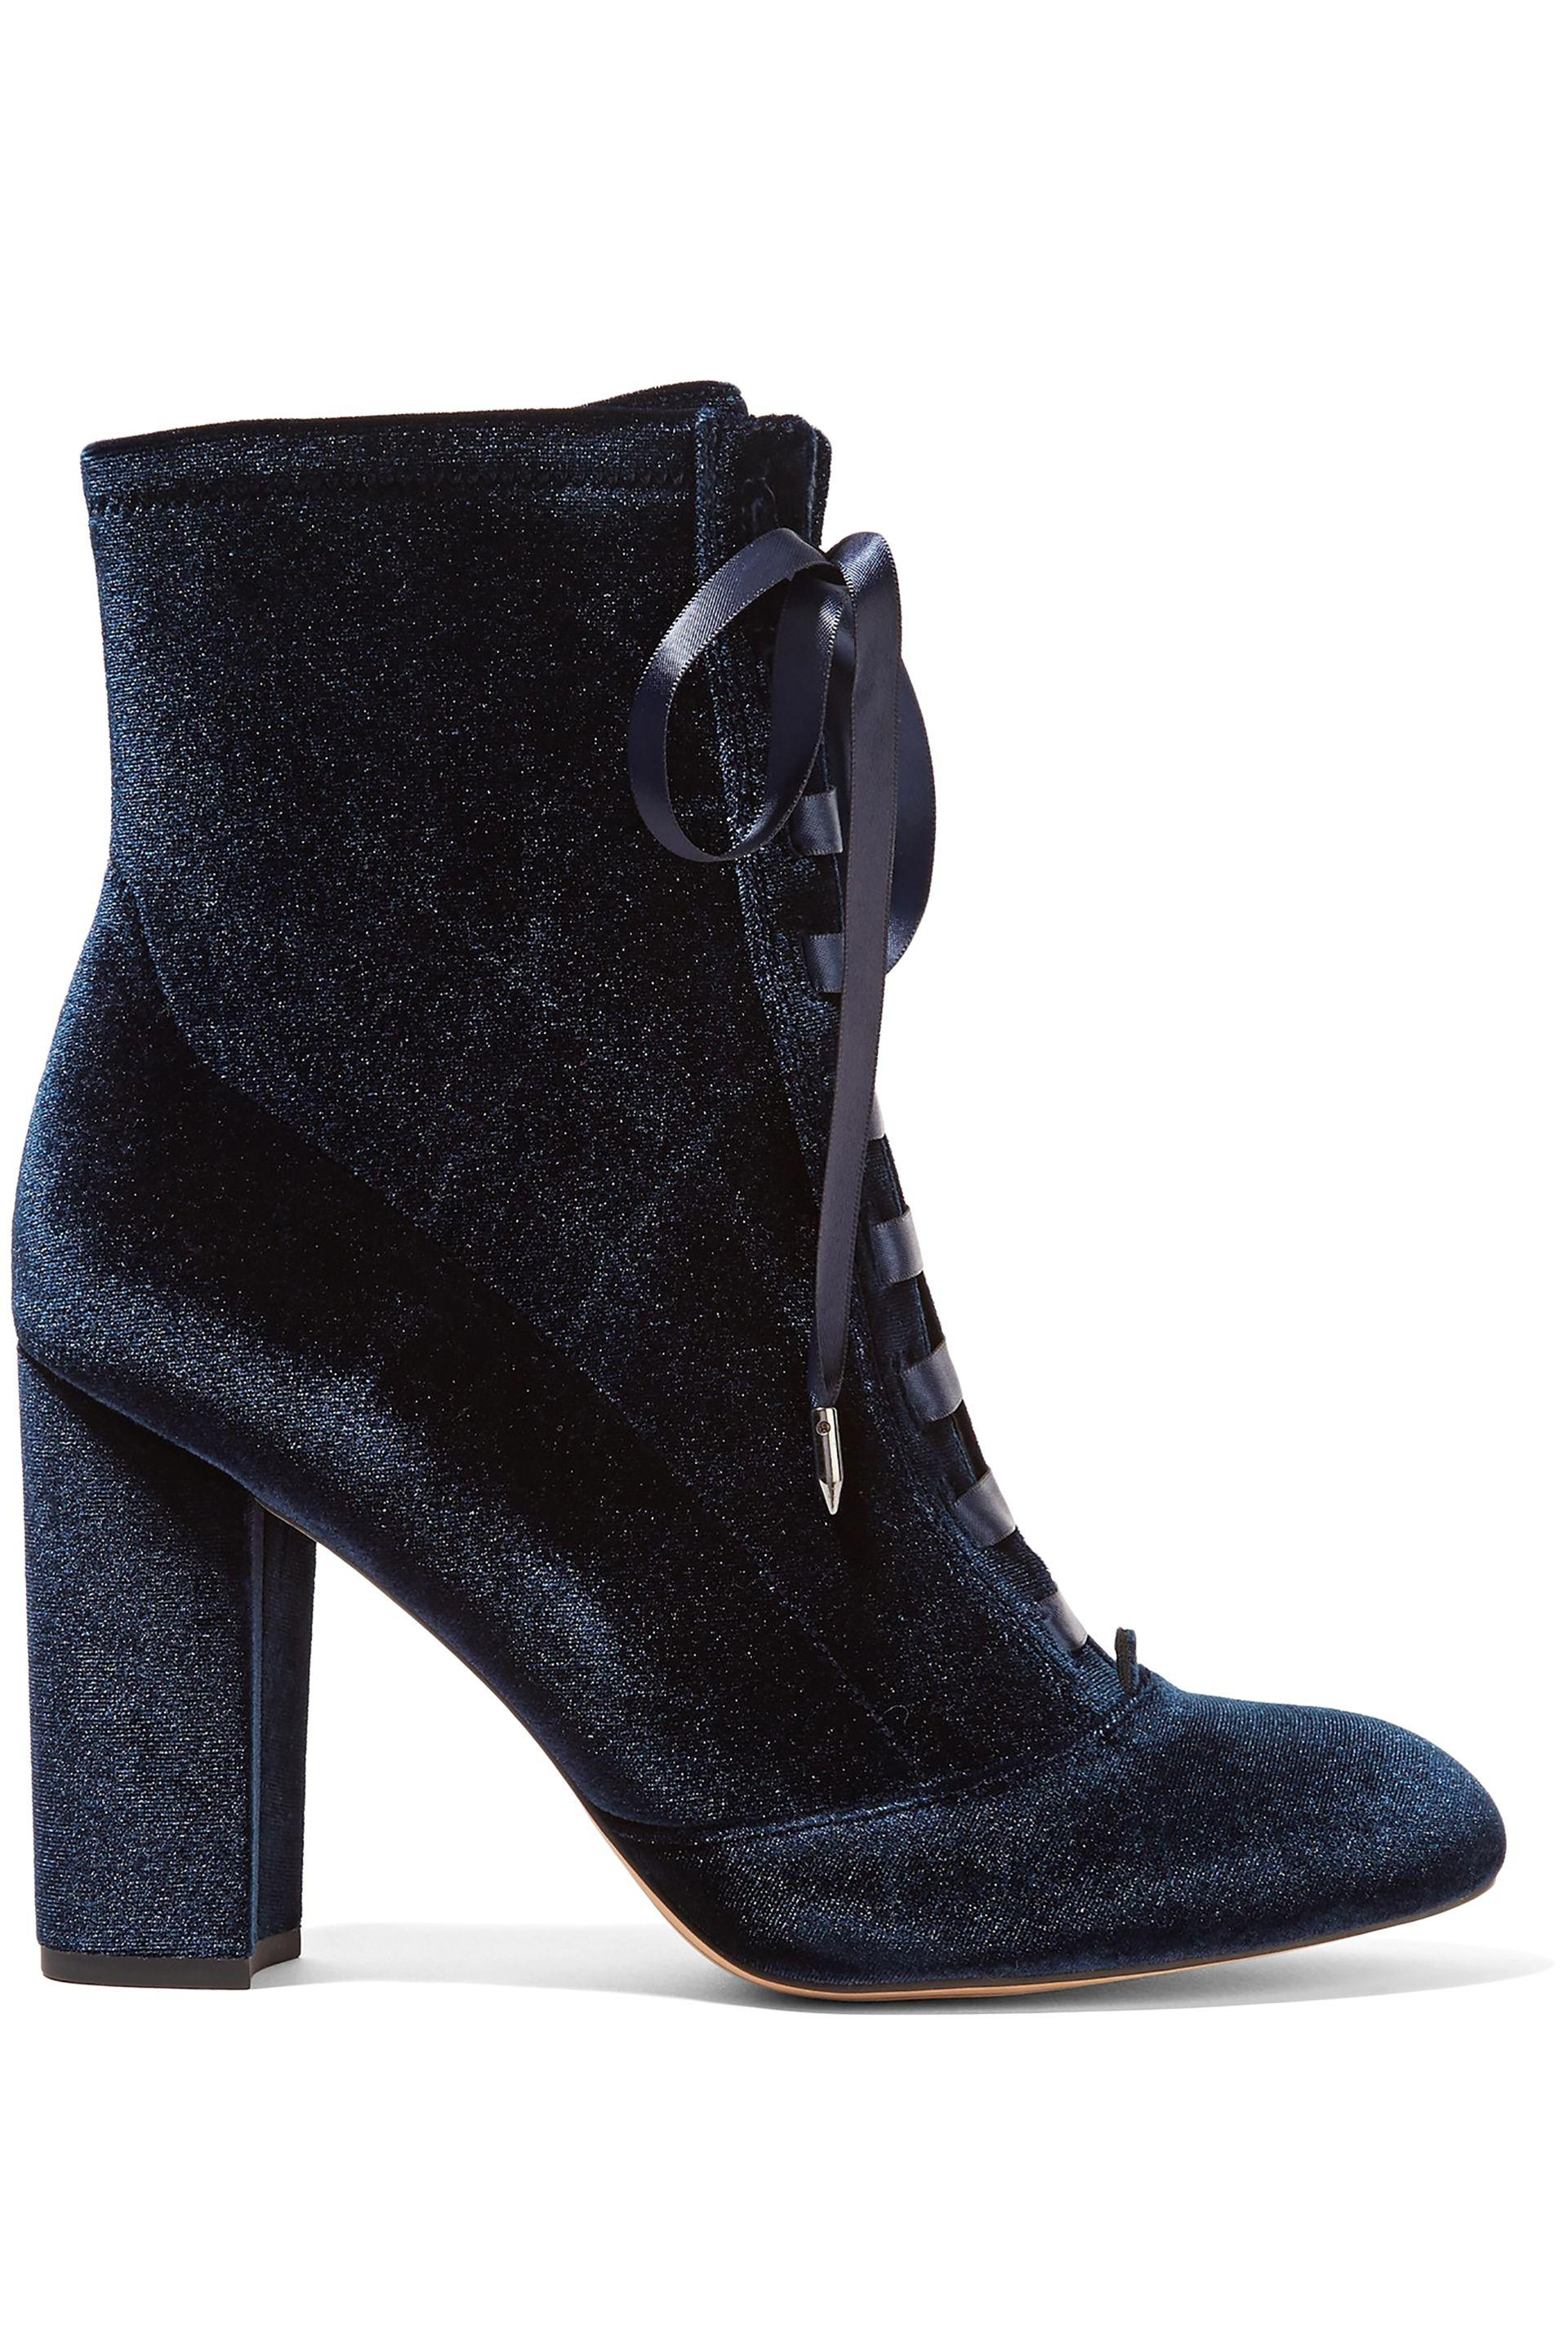 bdbffc37722be Sam Edelman Clementine Lace-up Velvet Ankle Boots in Blue - Save ...